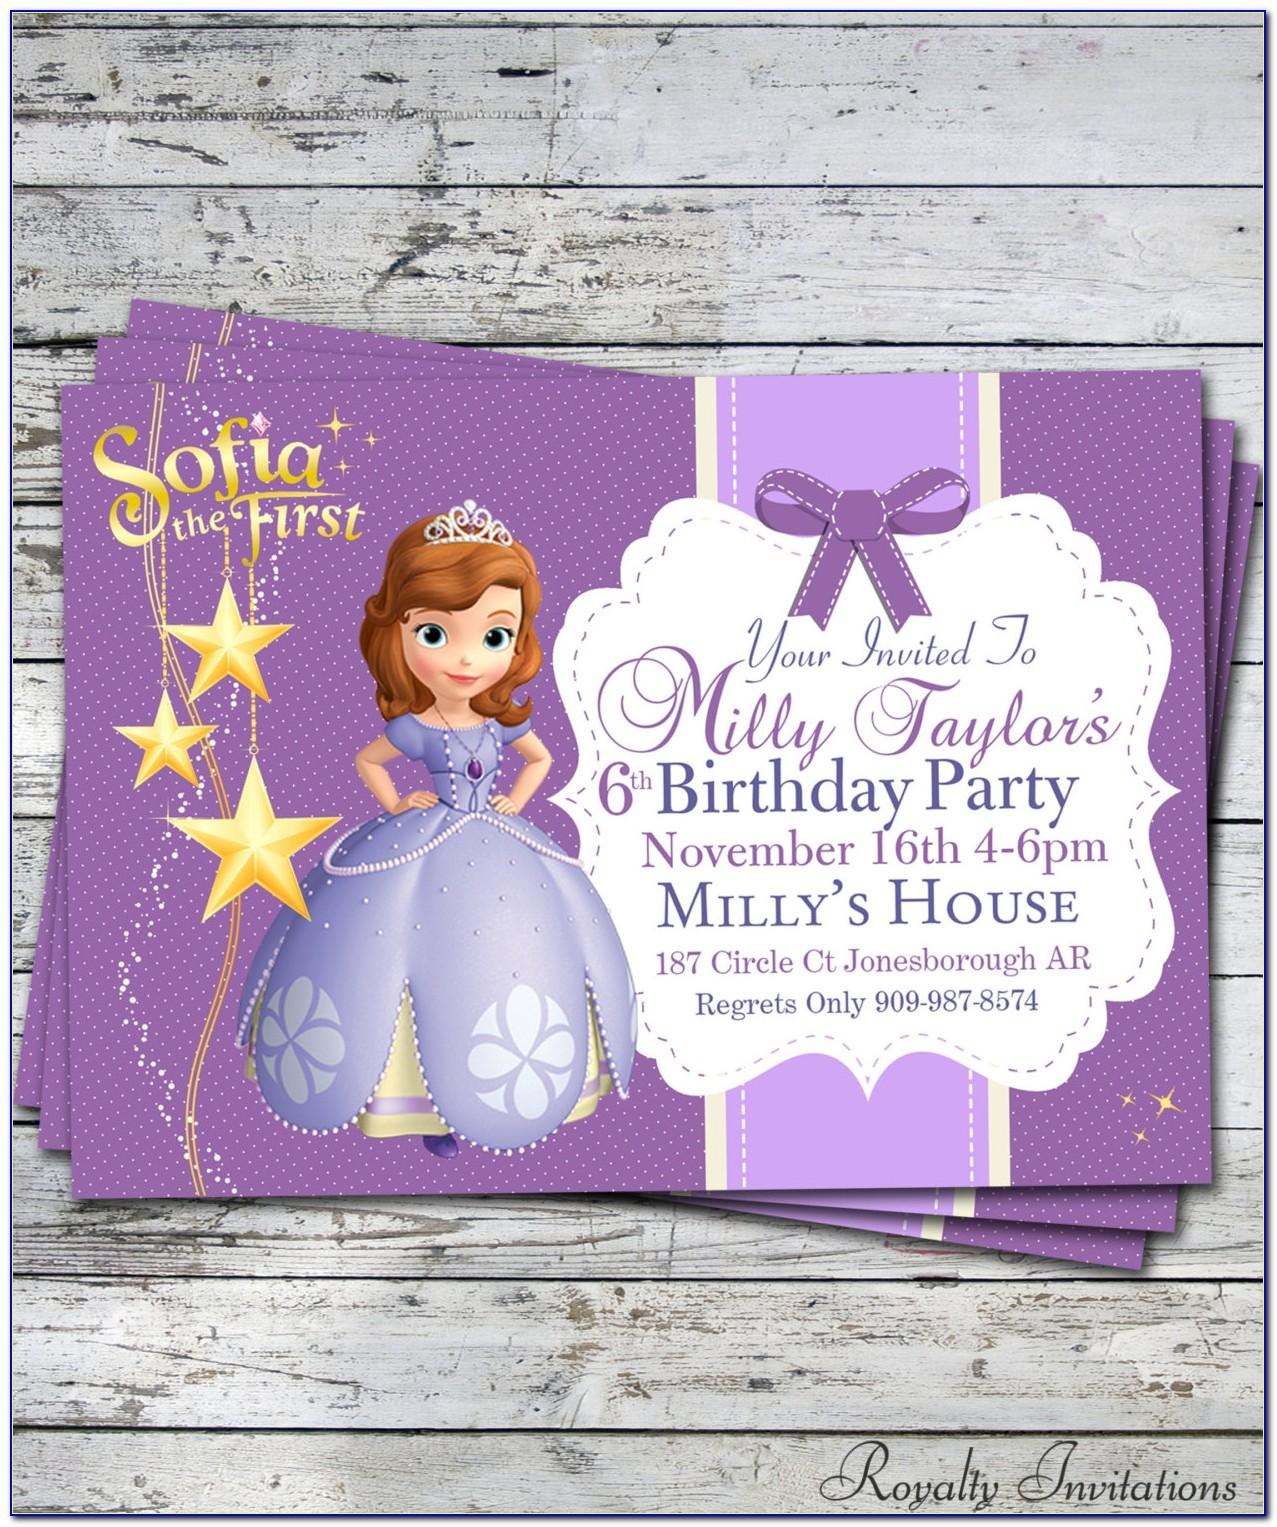 Sofia The First Birthday Party Invitations Template